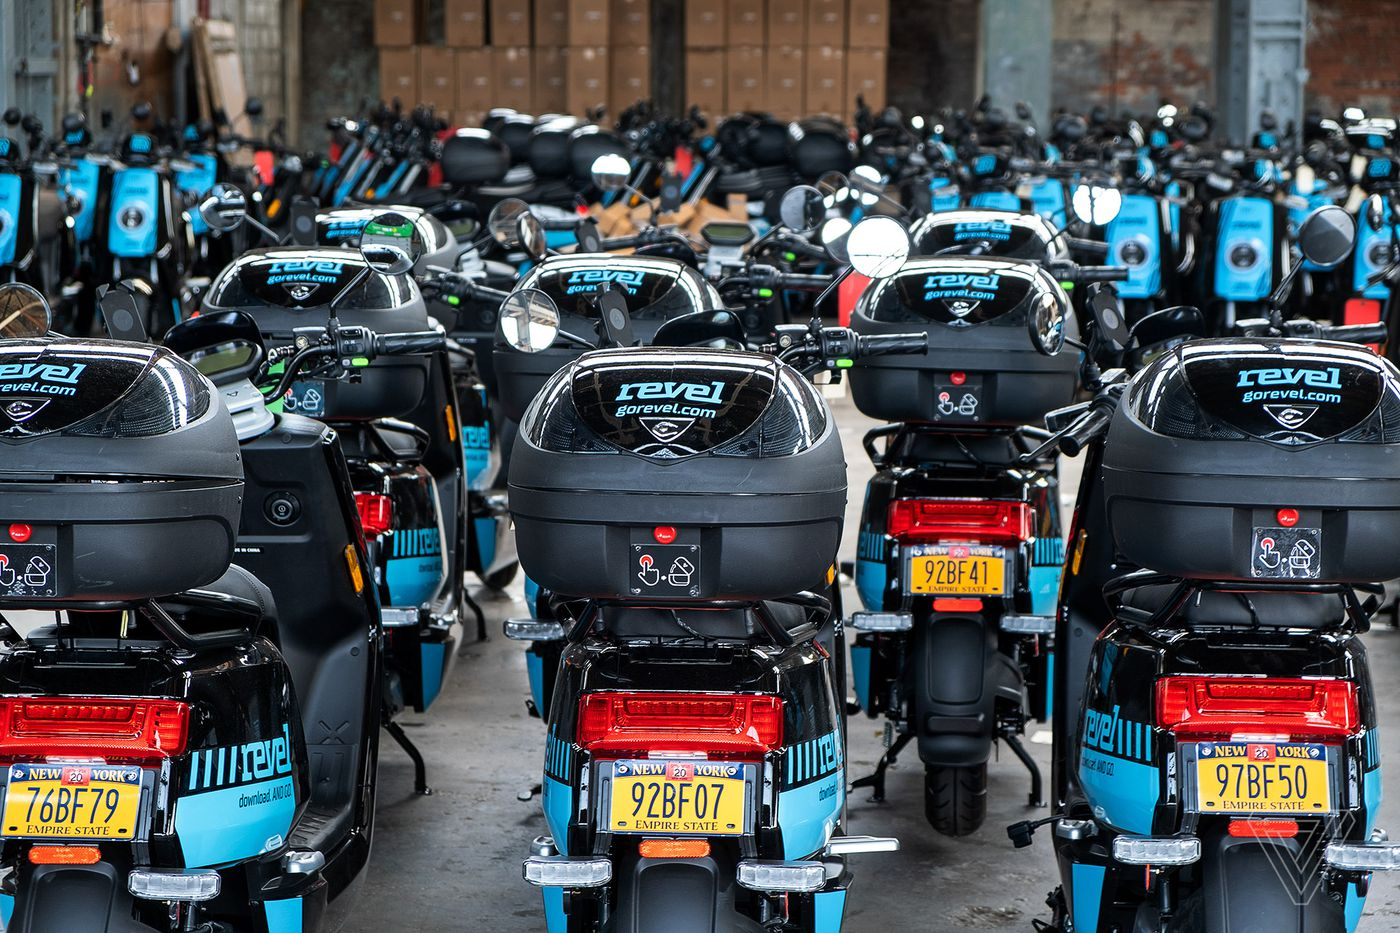 Revel's mopeds are a fun ride around Brooklyn and Queens